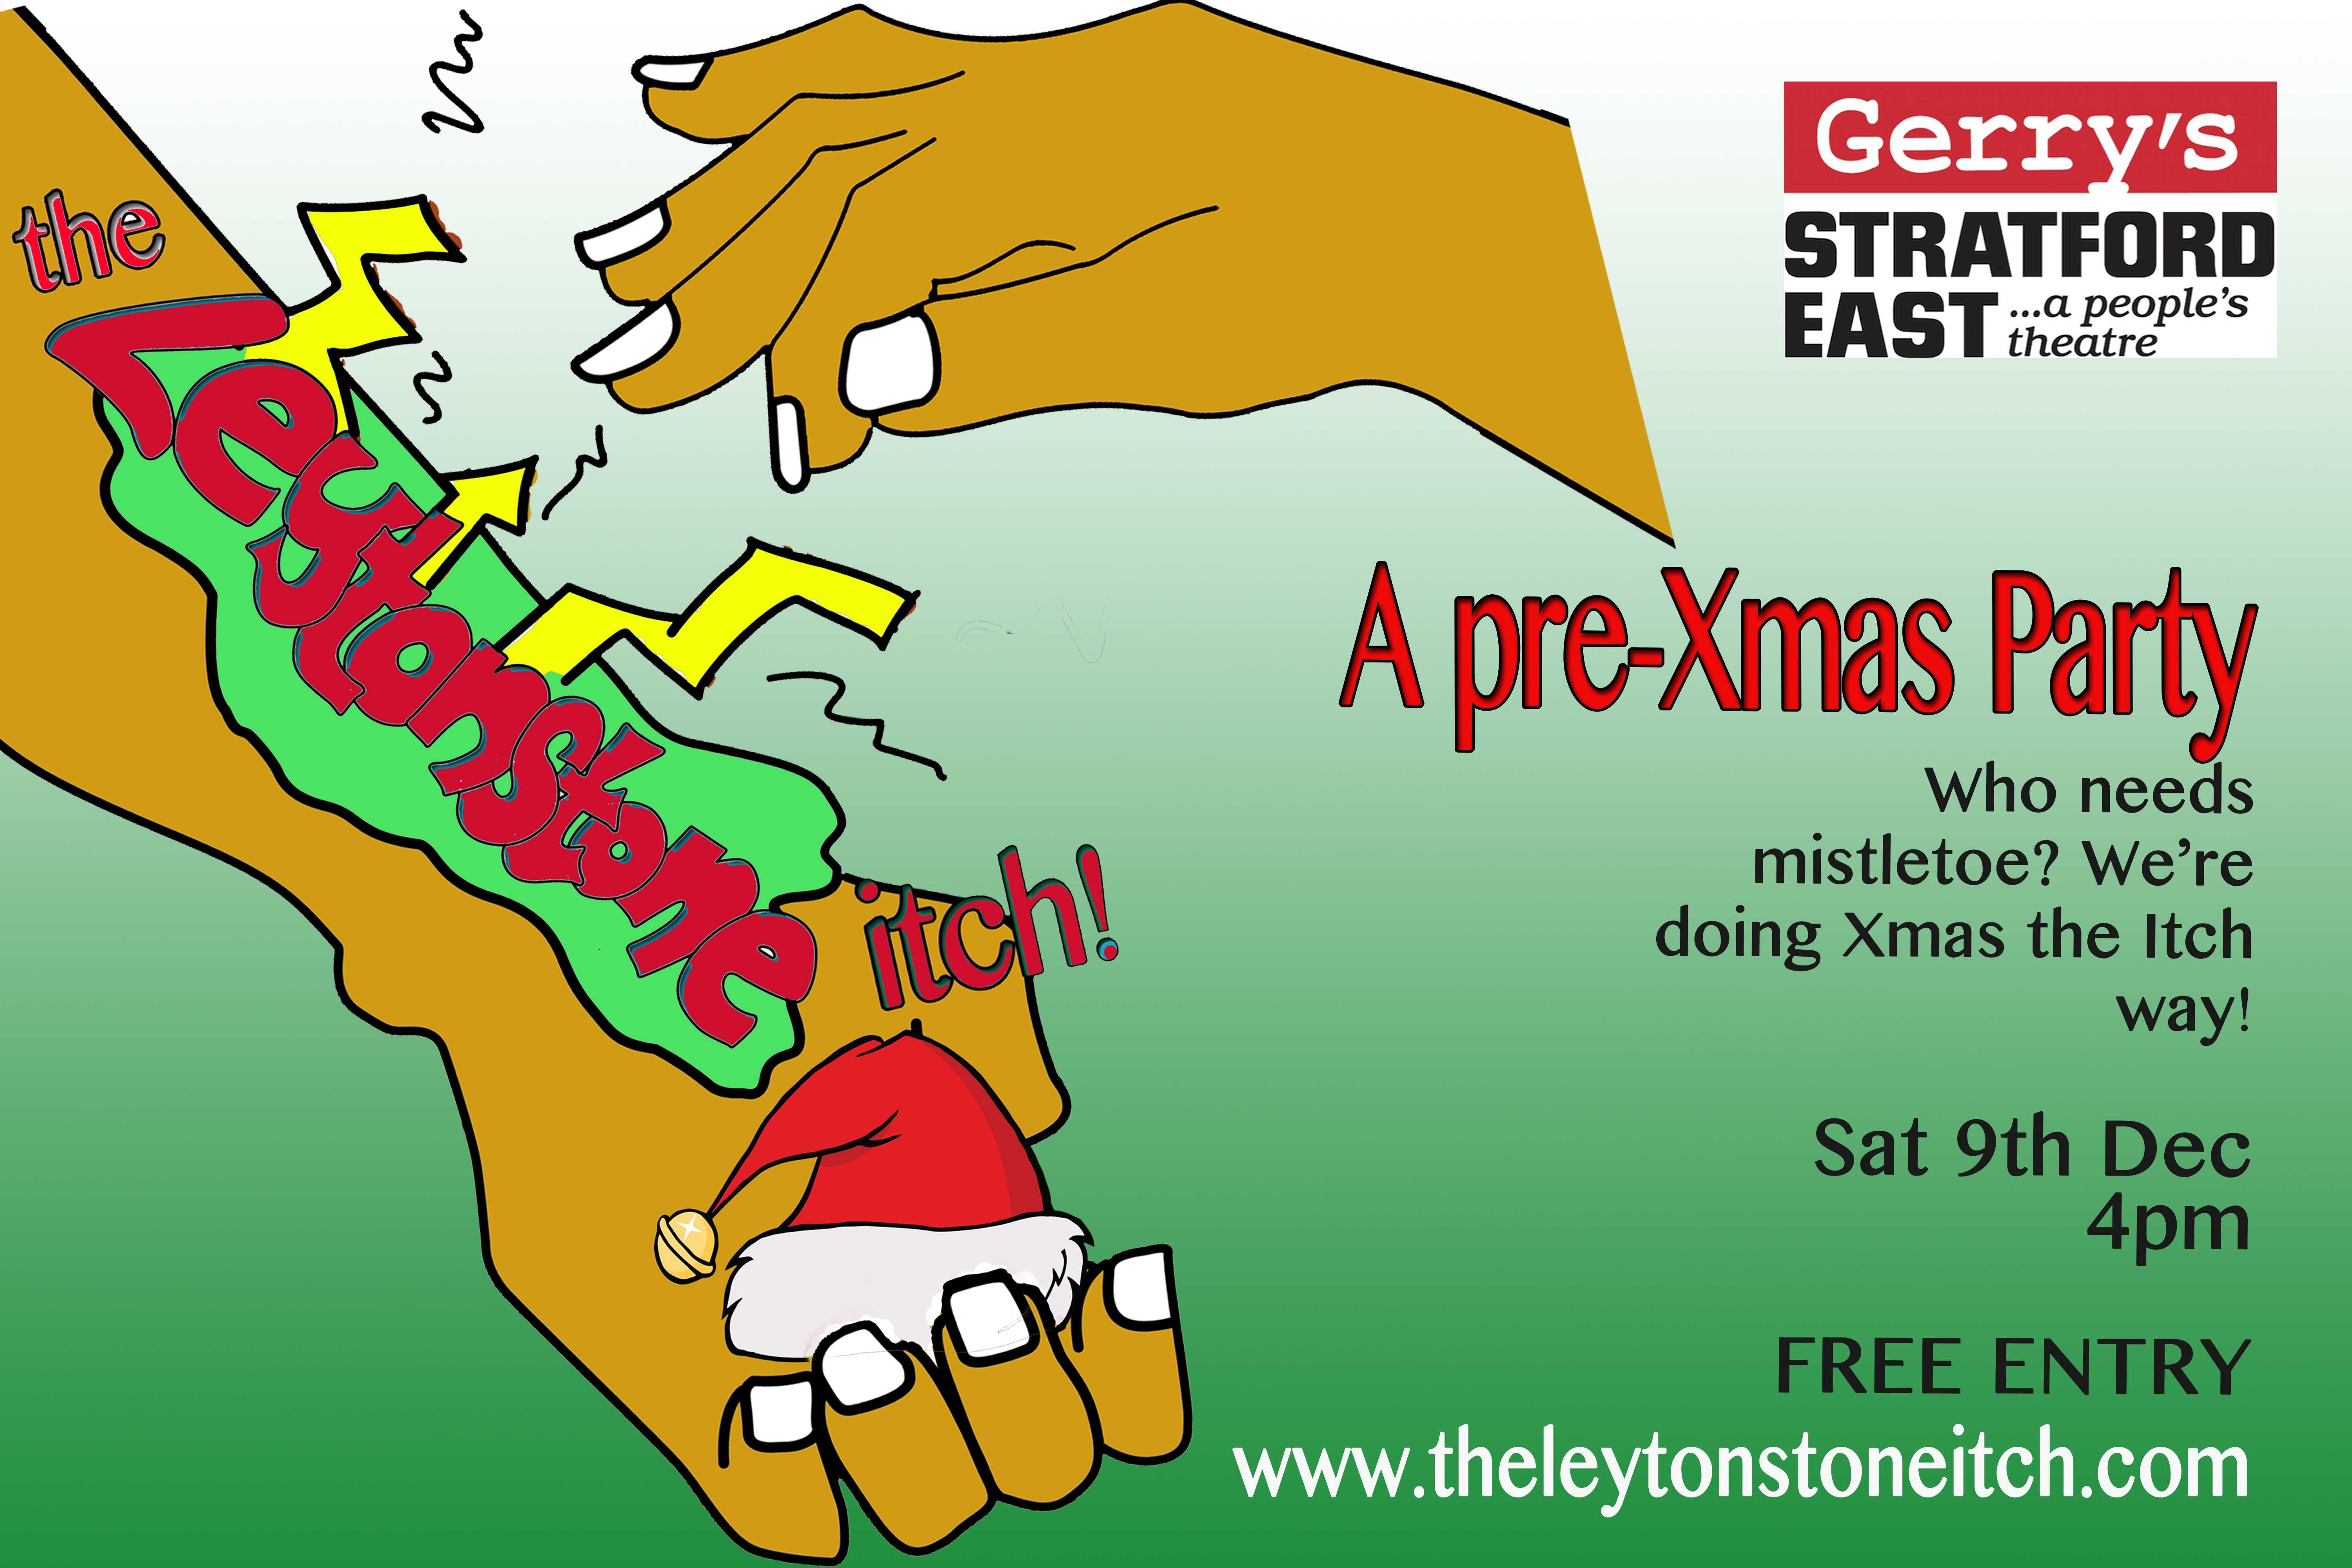 The Leytonstone Itch - A Pre-Xmas Party